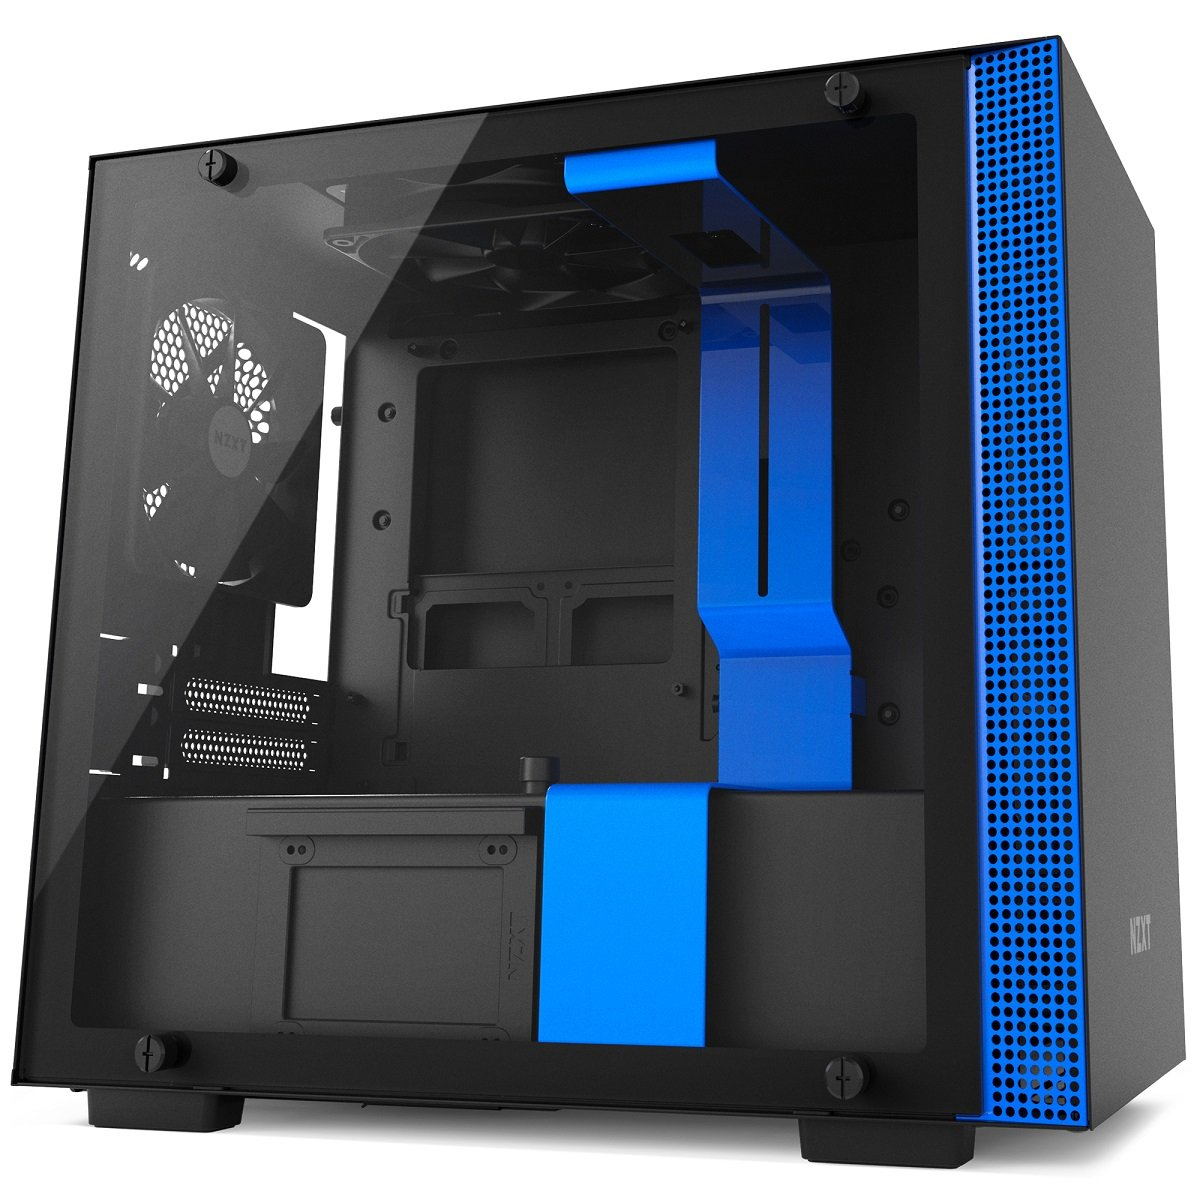 NZXT H700i Mid-Tower Computer Case  with digital fan control and RGB lighting, Black/Red (CA-H700W-BR) NZXT - US PC